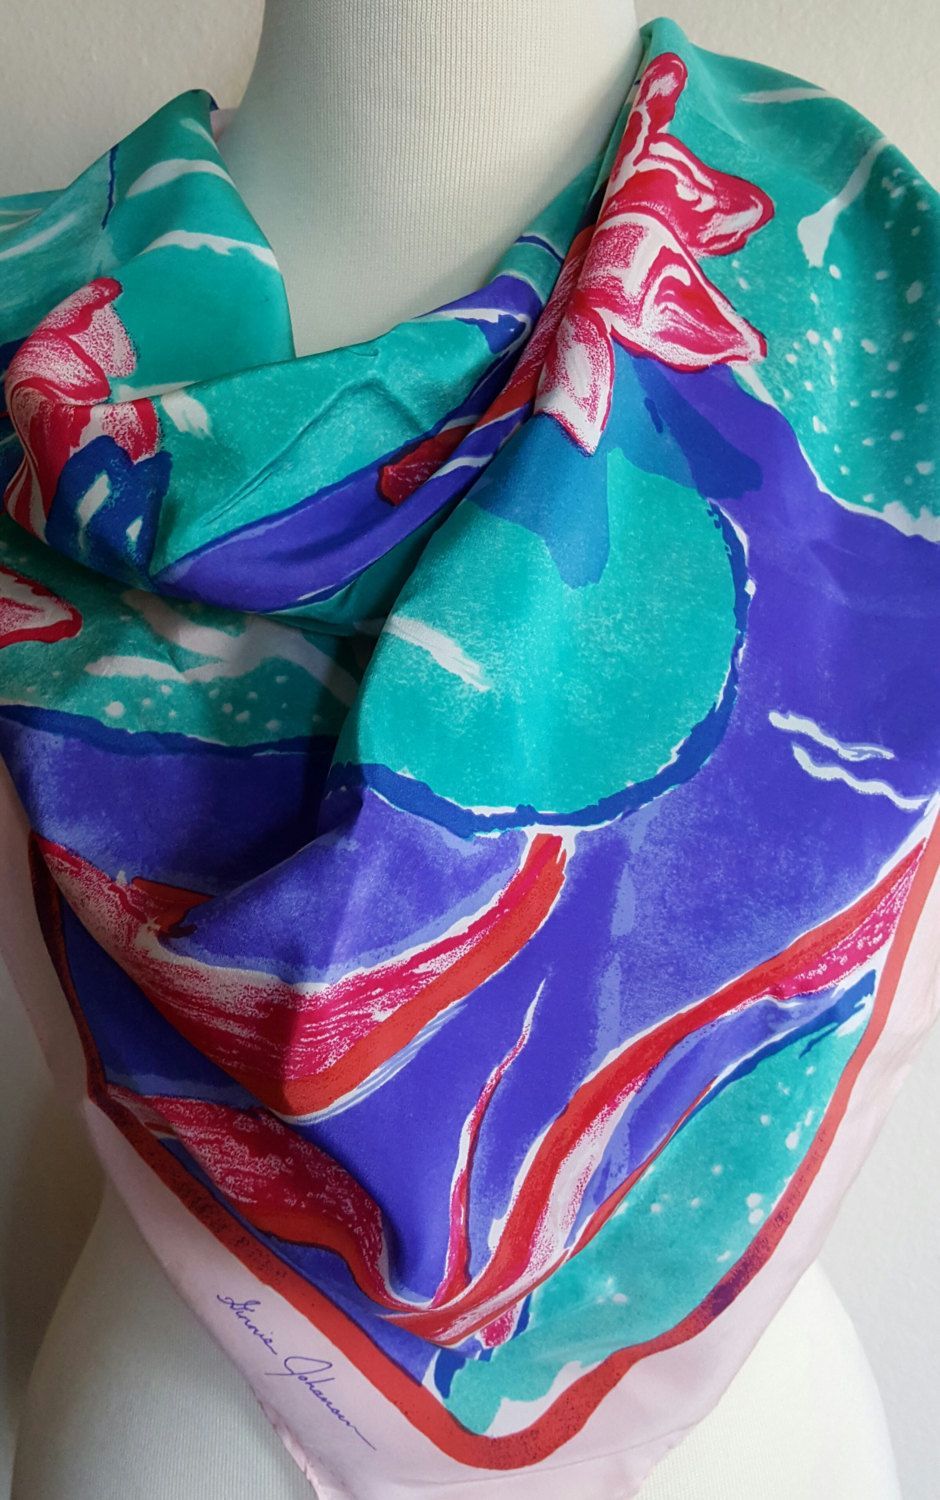 """SILK SCARF / Ginnie Johansen 1988 / Water Lilies / Large Square 34"""" / Head Scarf / Driving Scarf /  Designer Scarf by BeautyFromThePast on Etsy"""